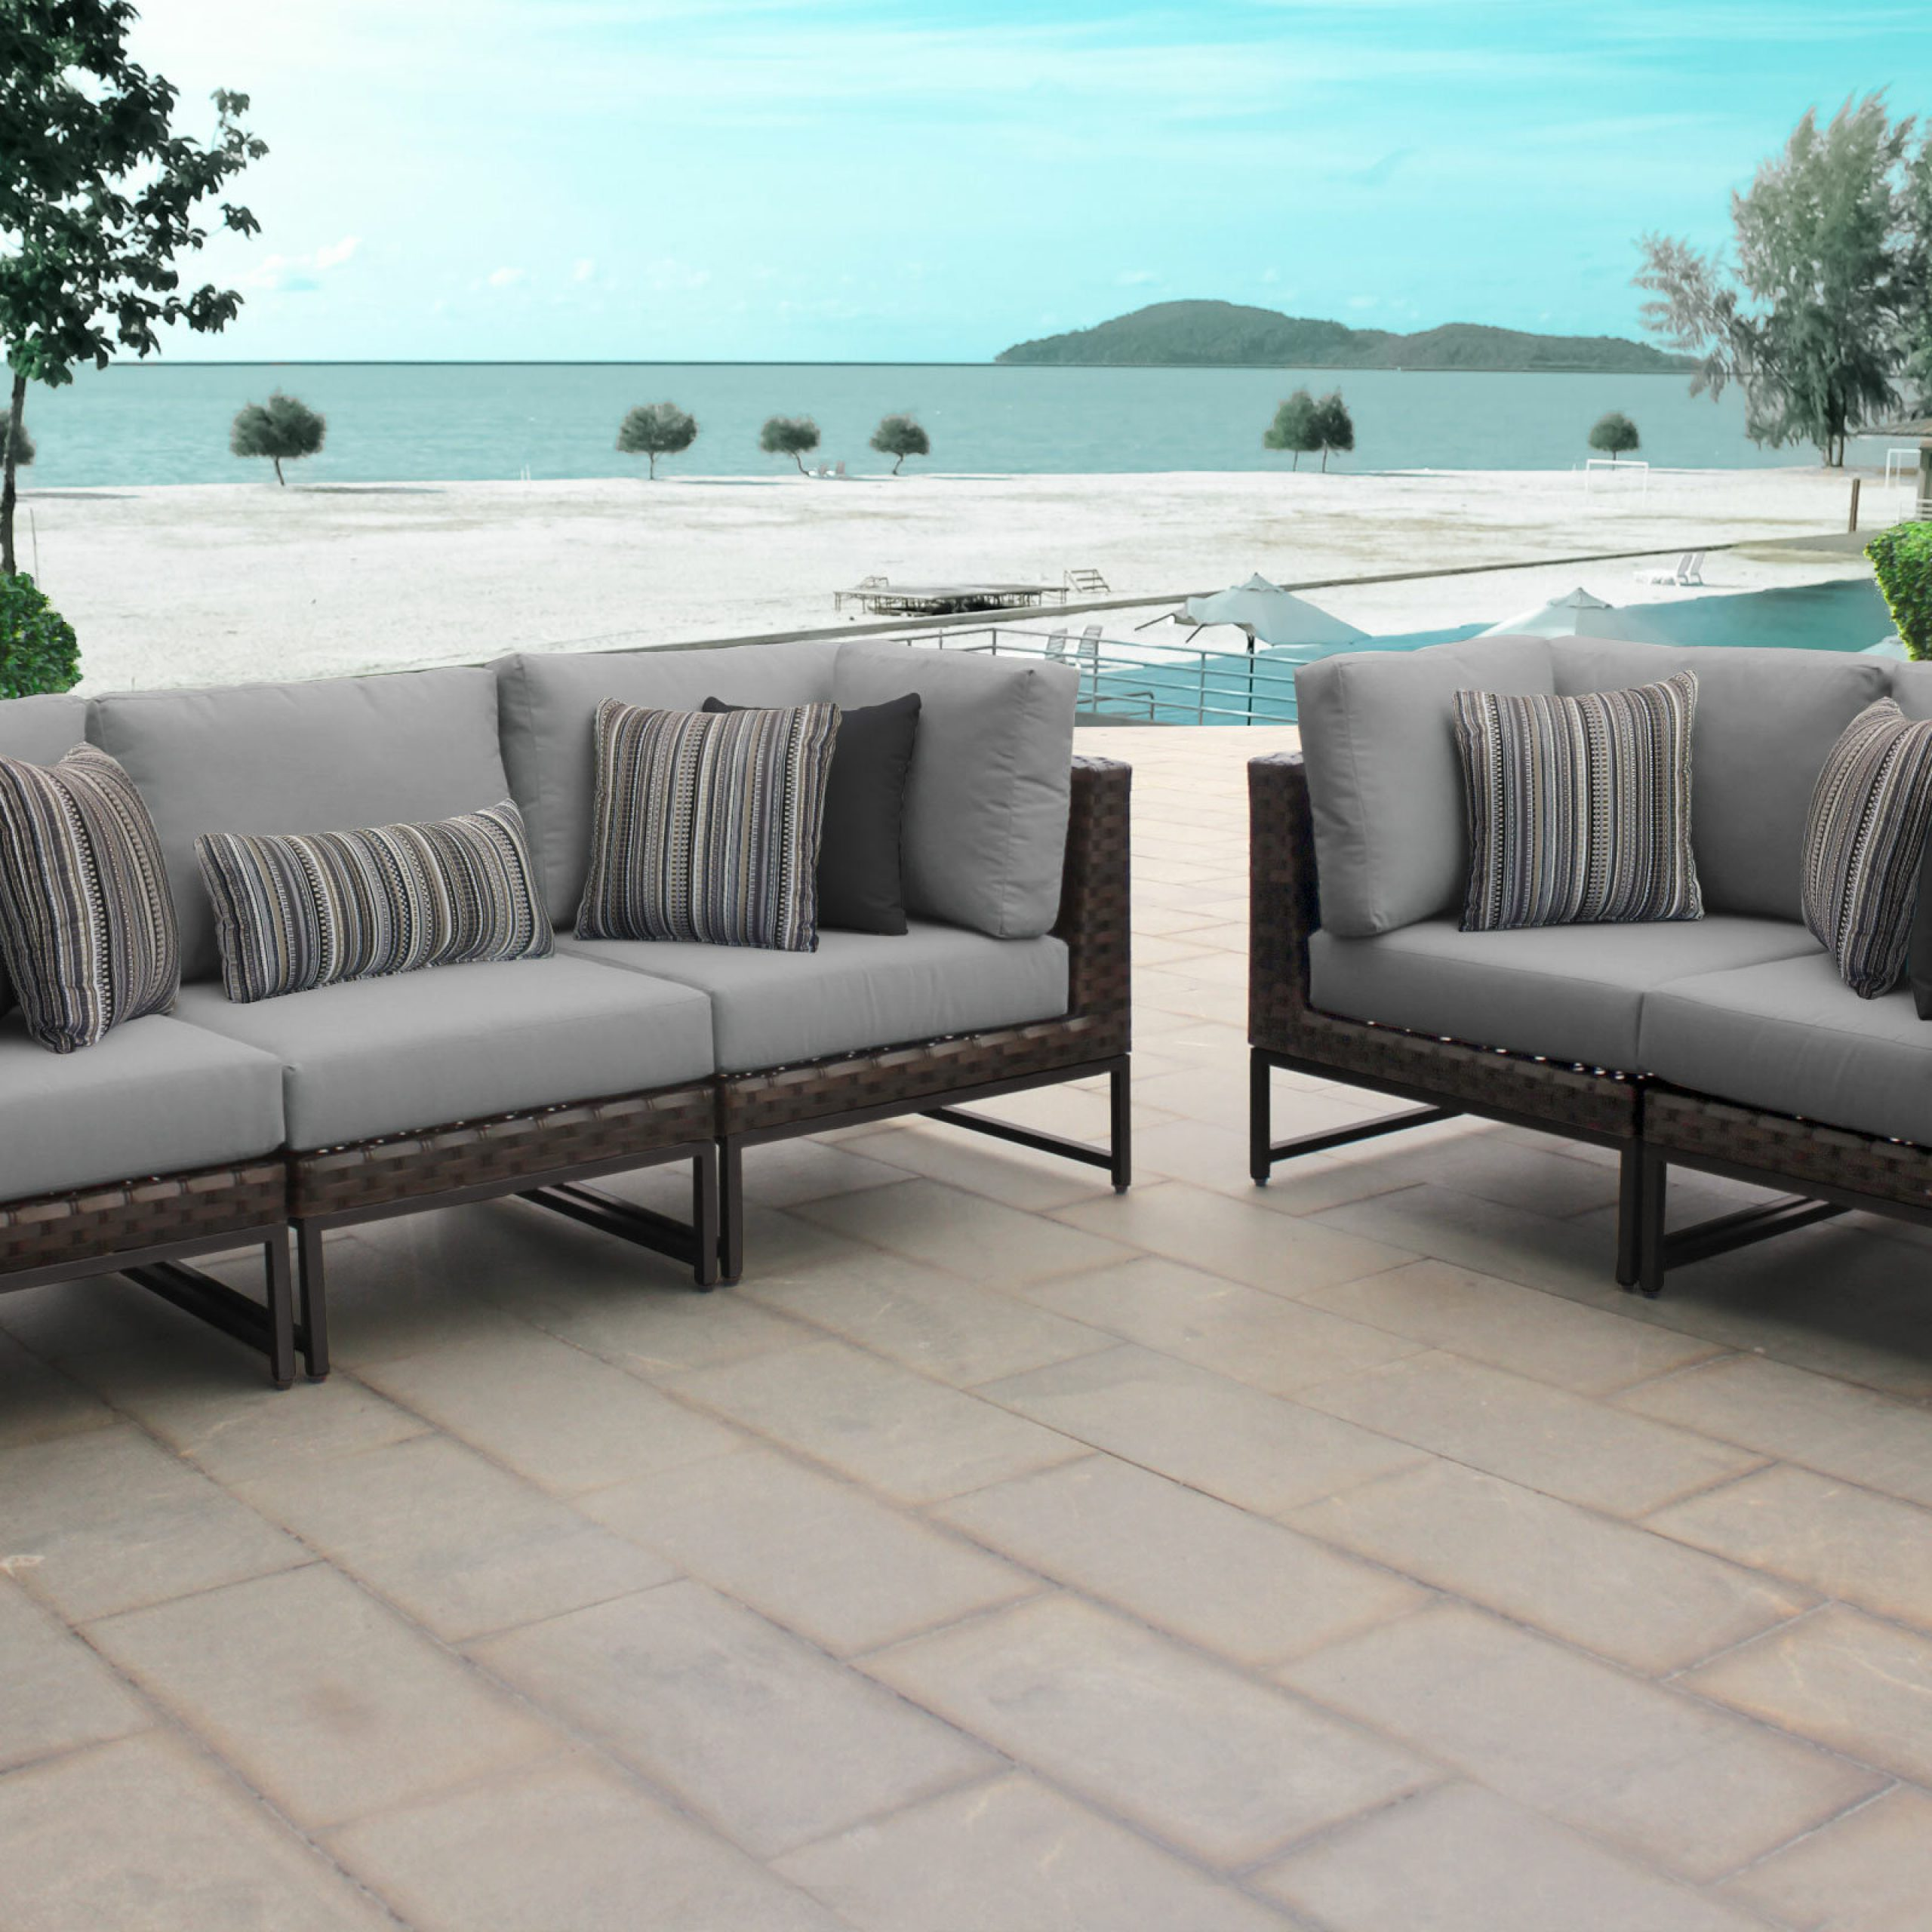 Fannin Patio Sofas With Cushions For Recent Mcclurg Patio Sofa With Cushions (View 3 of 25)